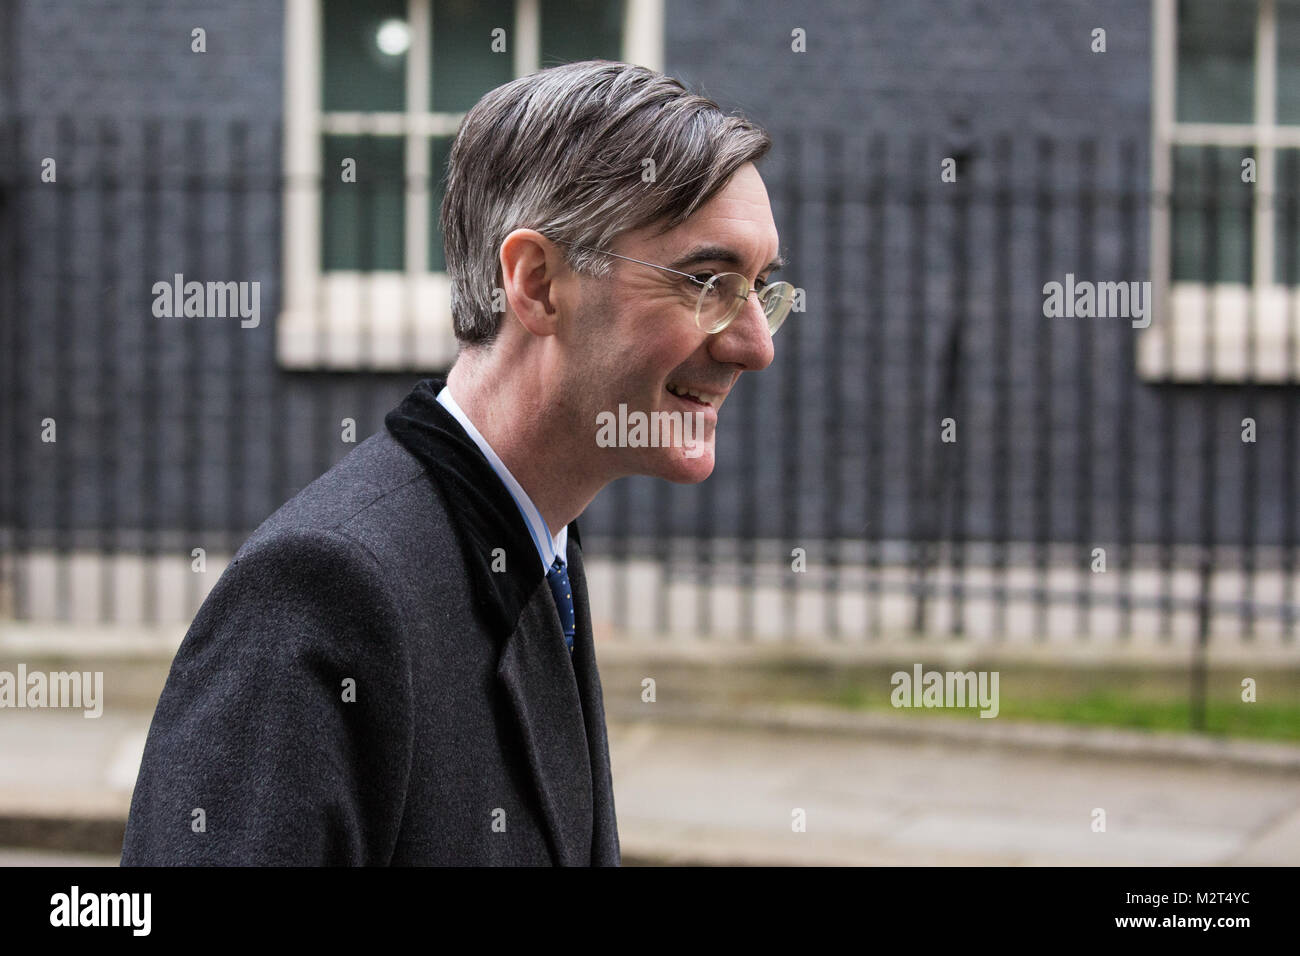 London, UK. 8th February, 2018. Jacob Rees-Mogg, Conservative MP for North East Somerset and a leading Brexiteer, - Stock Image